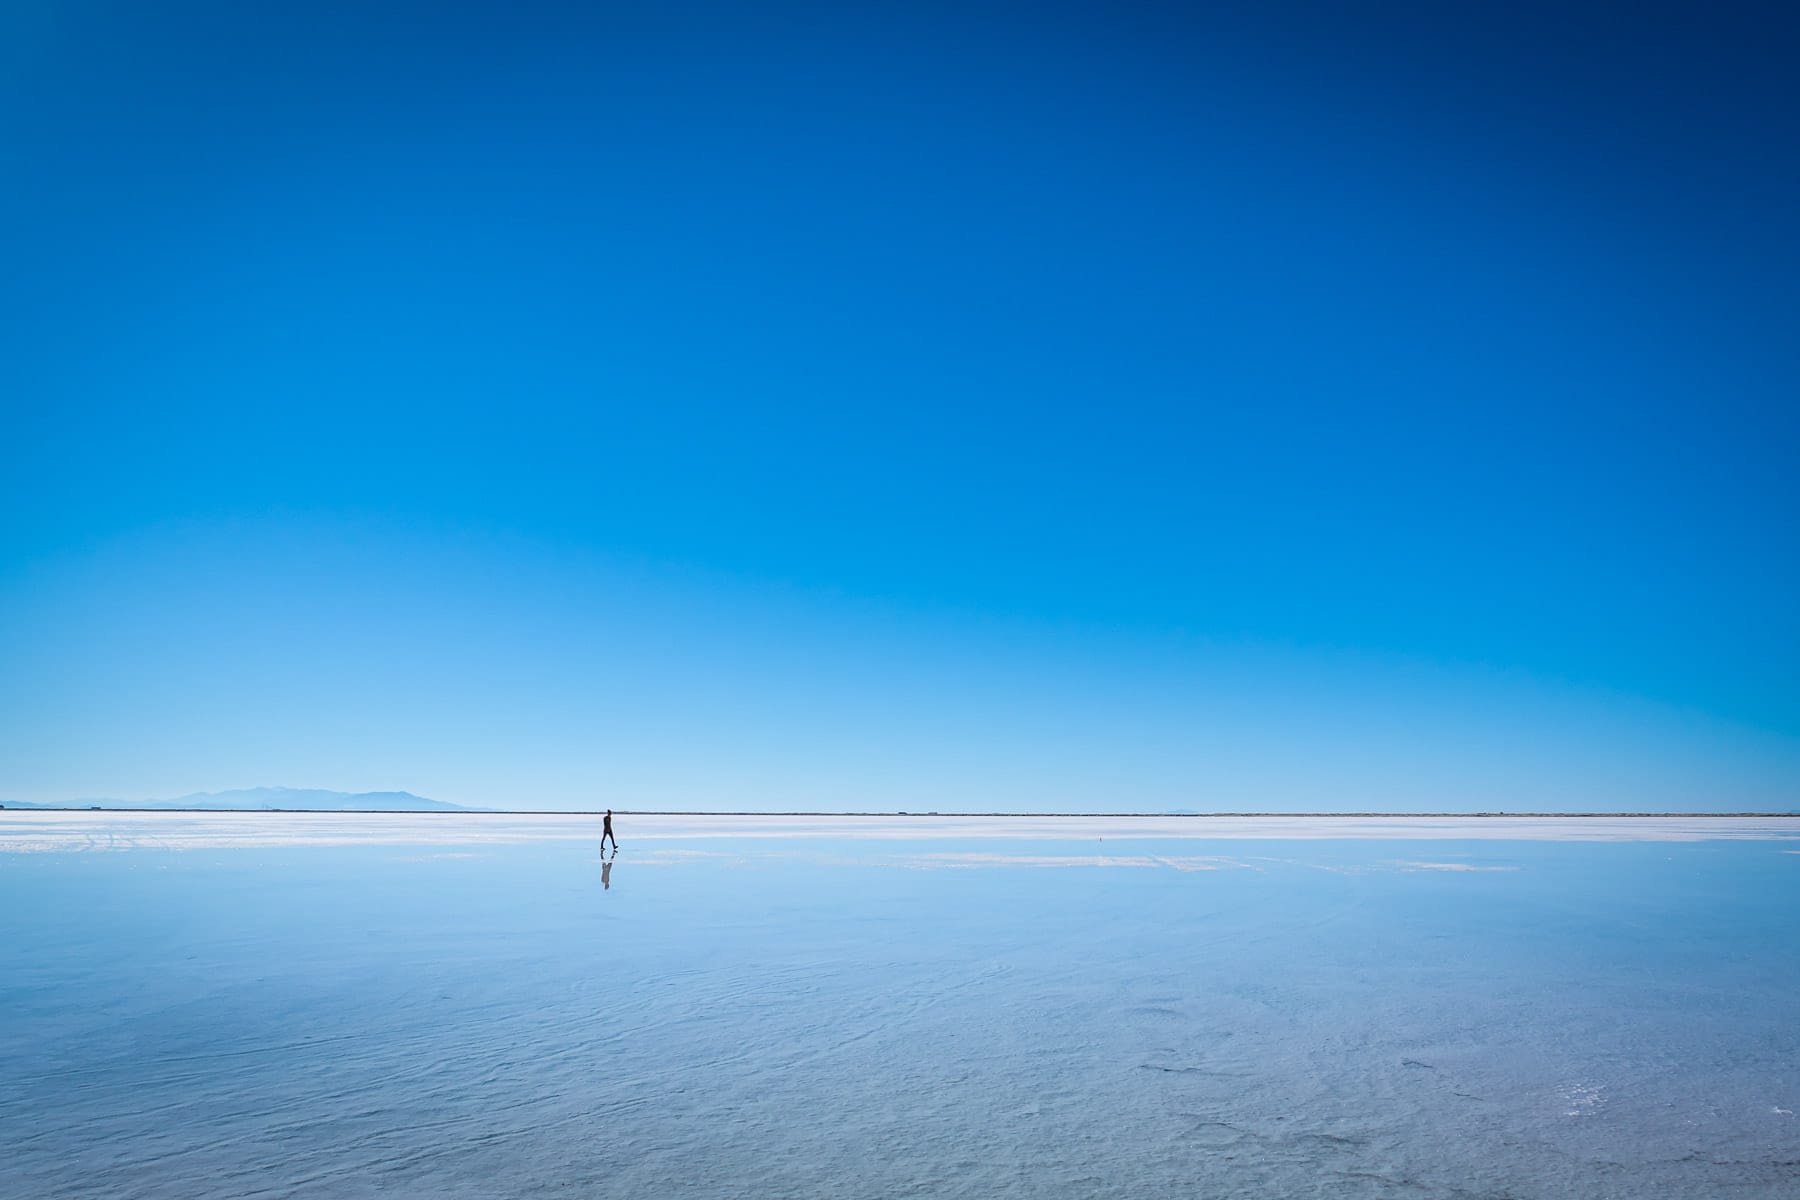 A lone figure walks among the other-worldly, seemingly-endless expanse of the Bonneville Salt Flats, Utah.